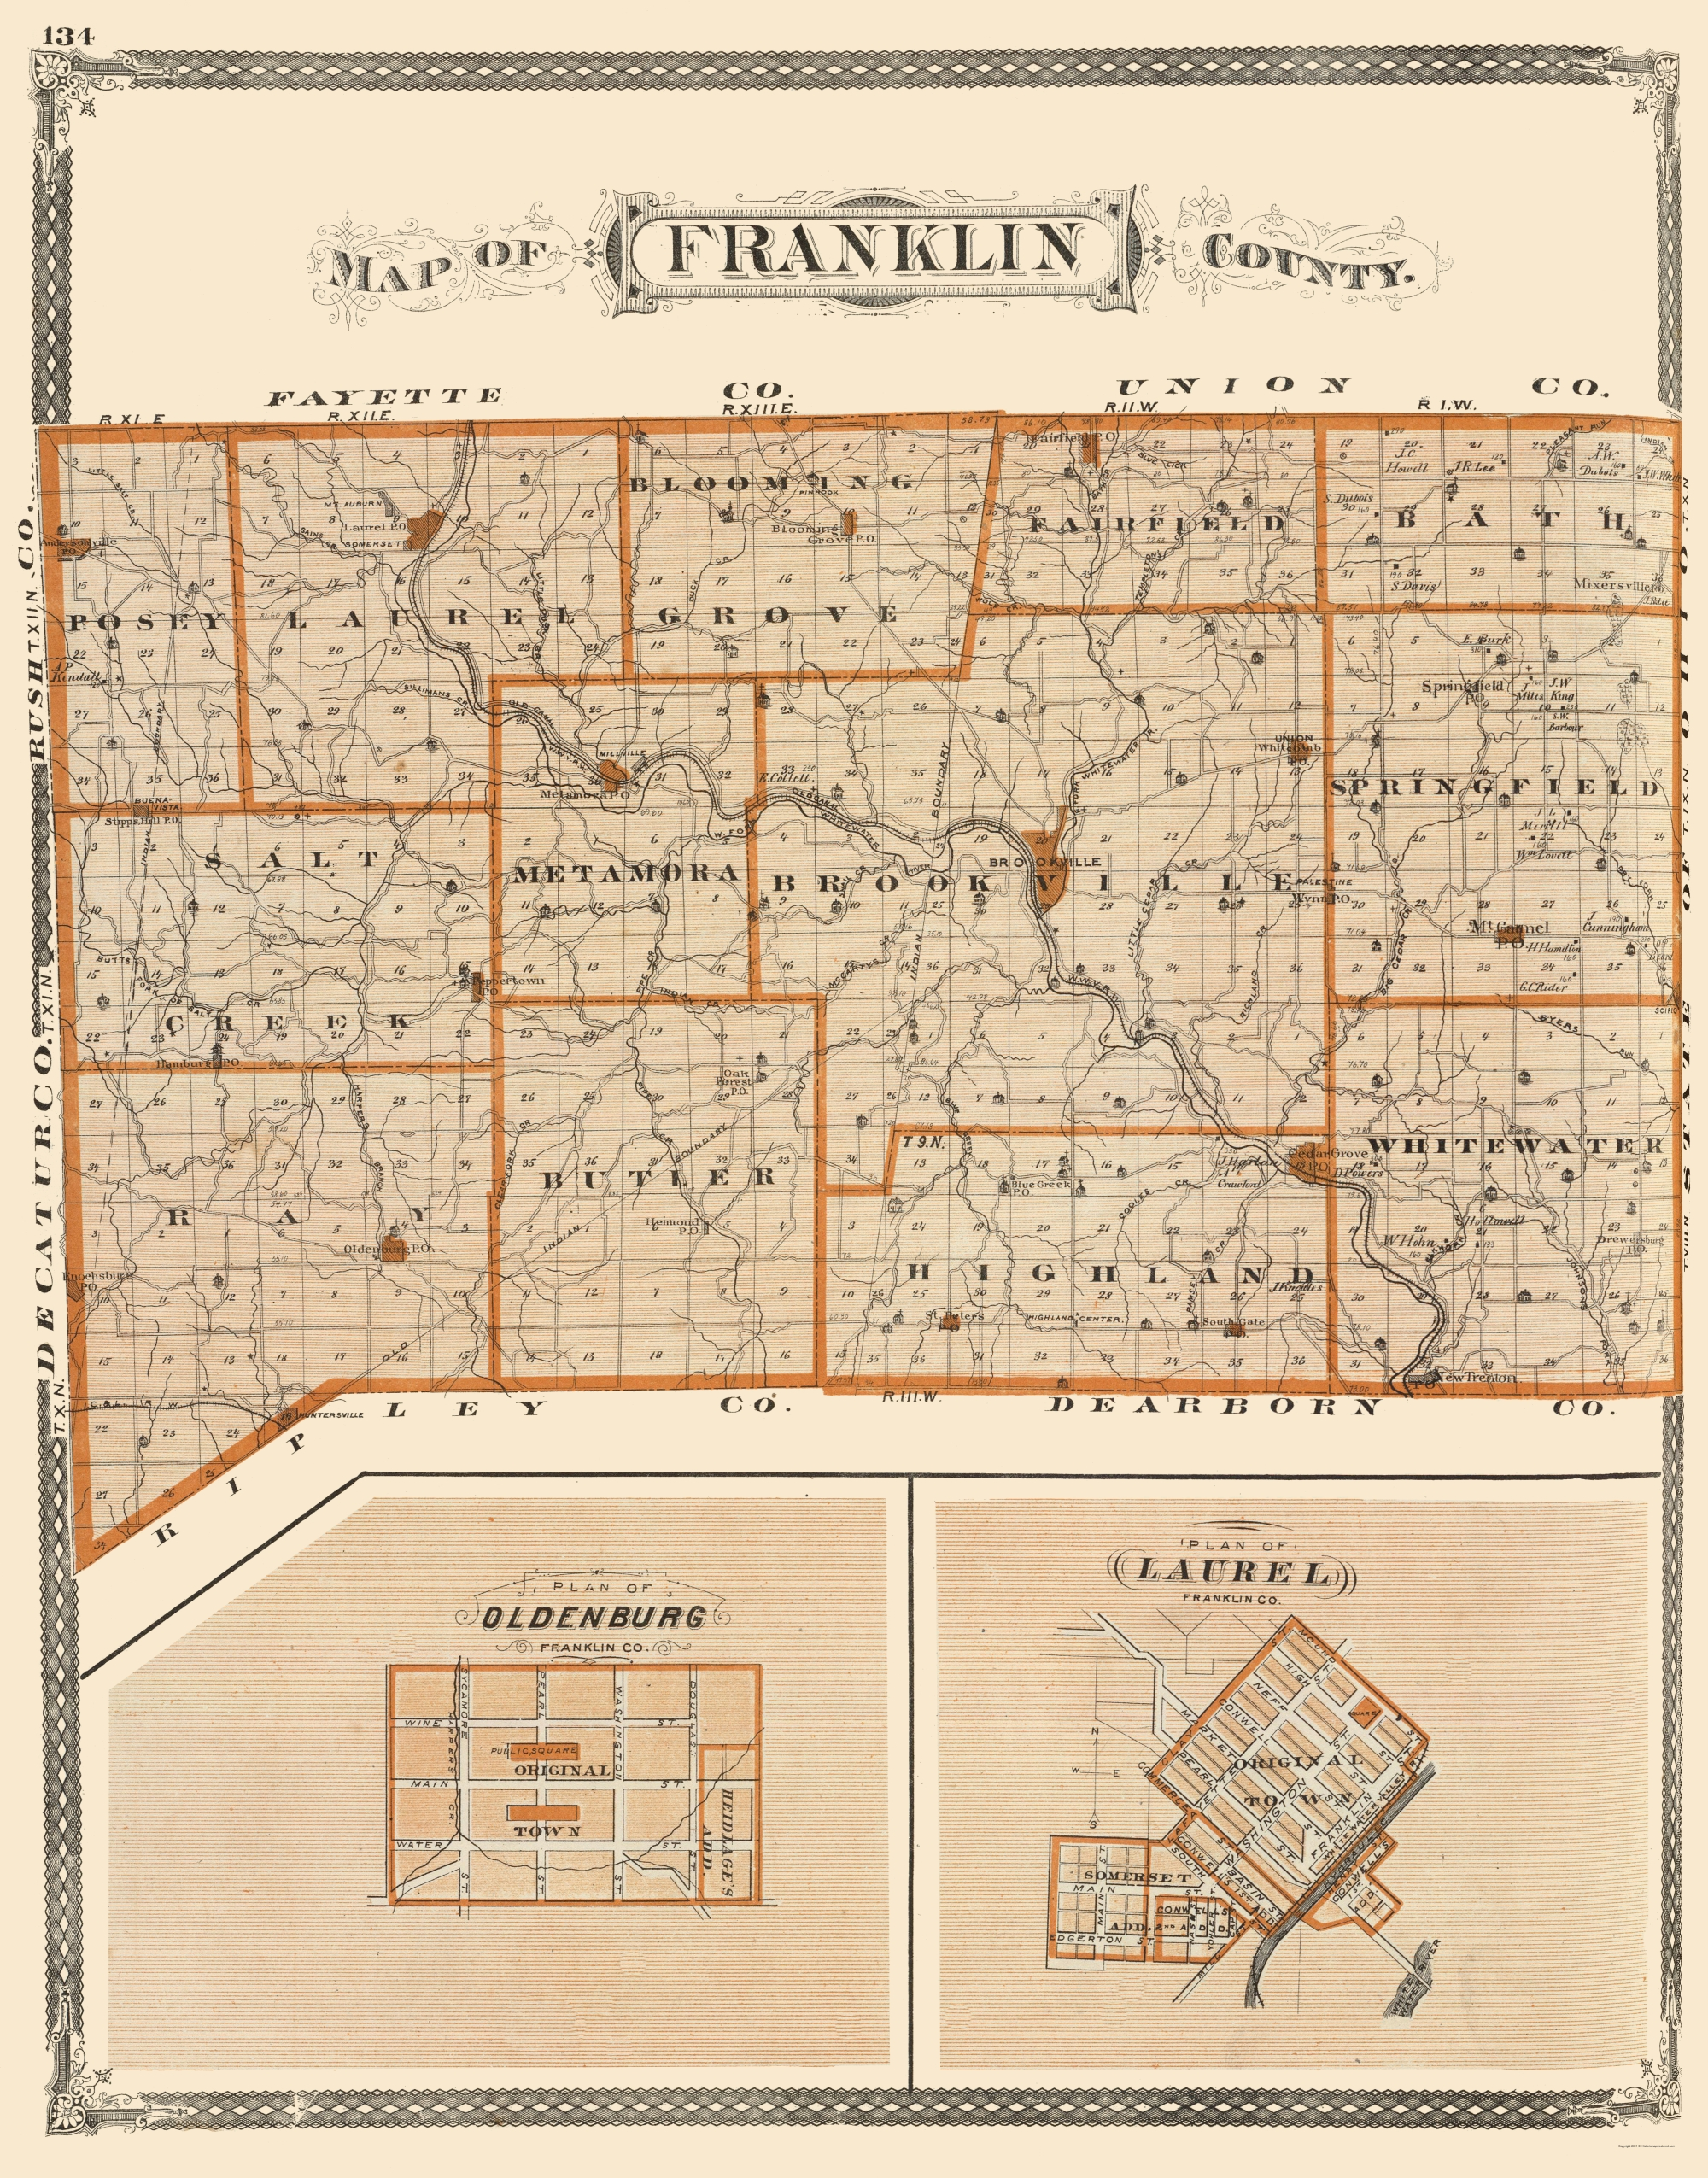 Old County Map Franklin Indiana Baskin 1876